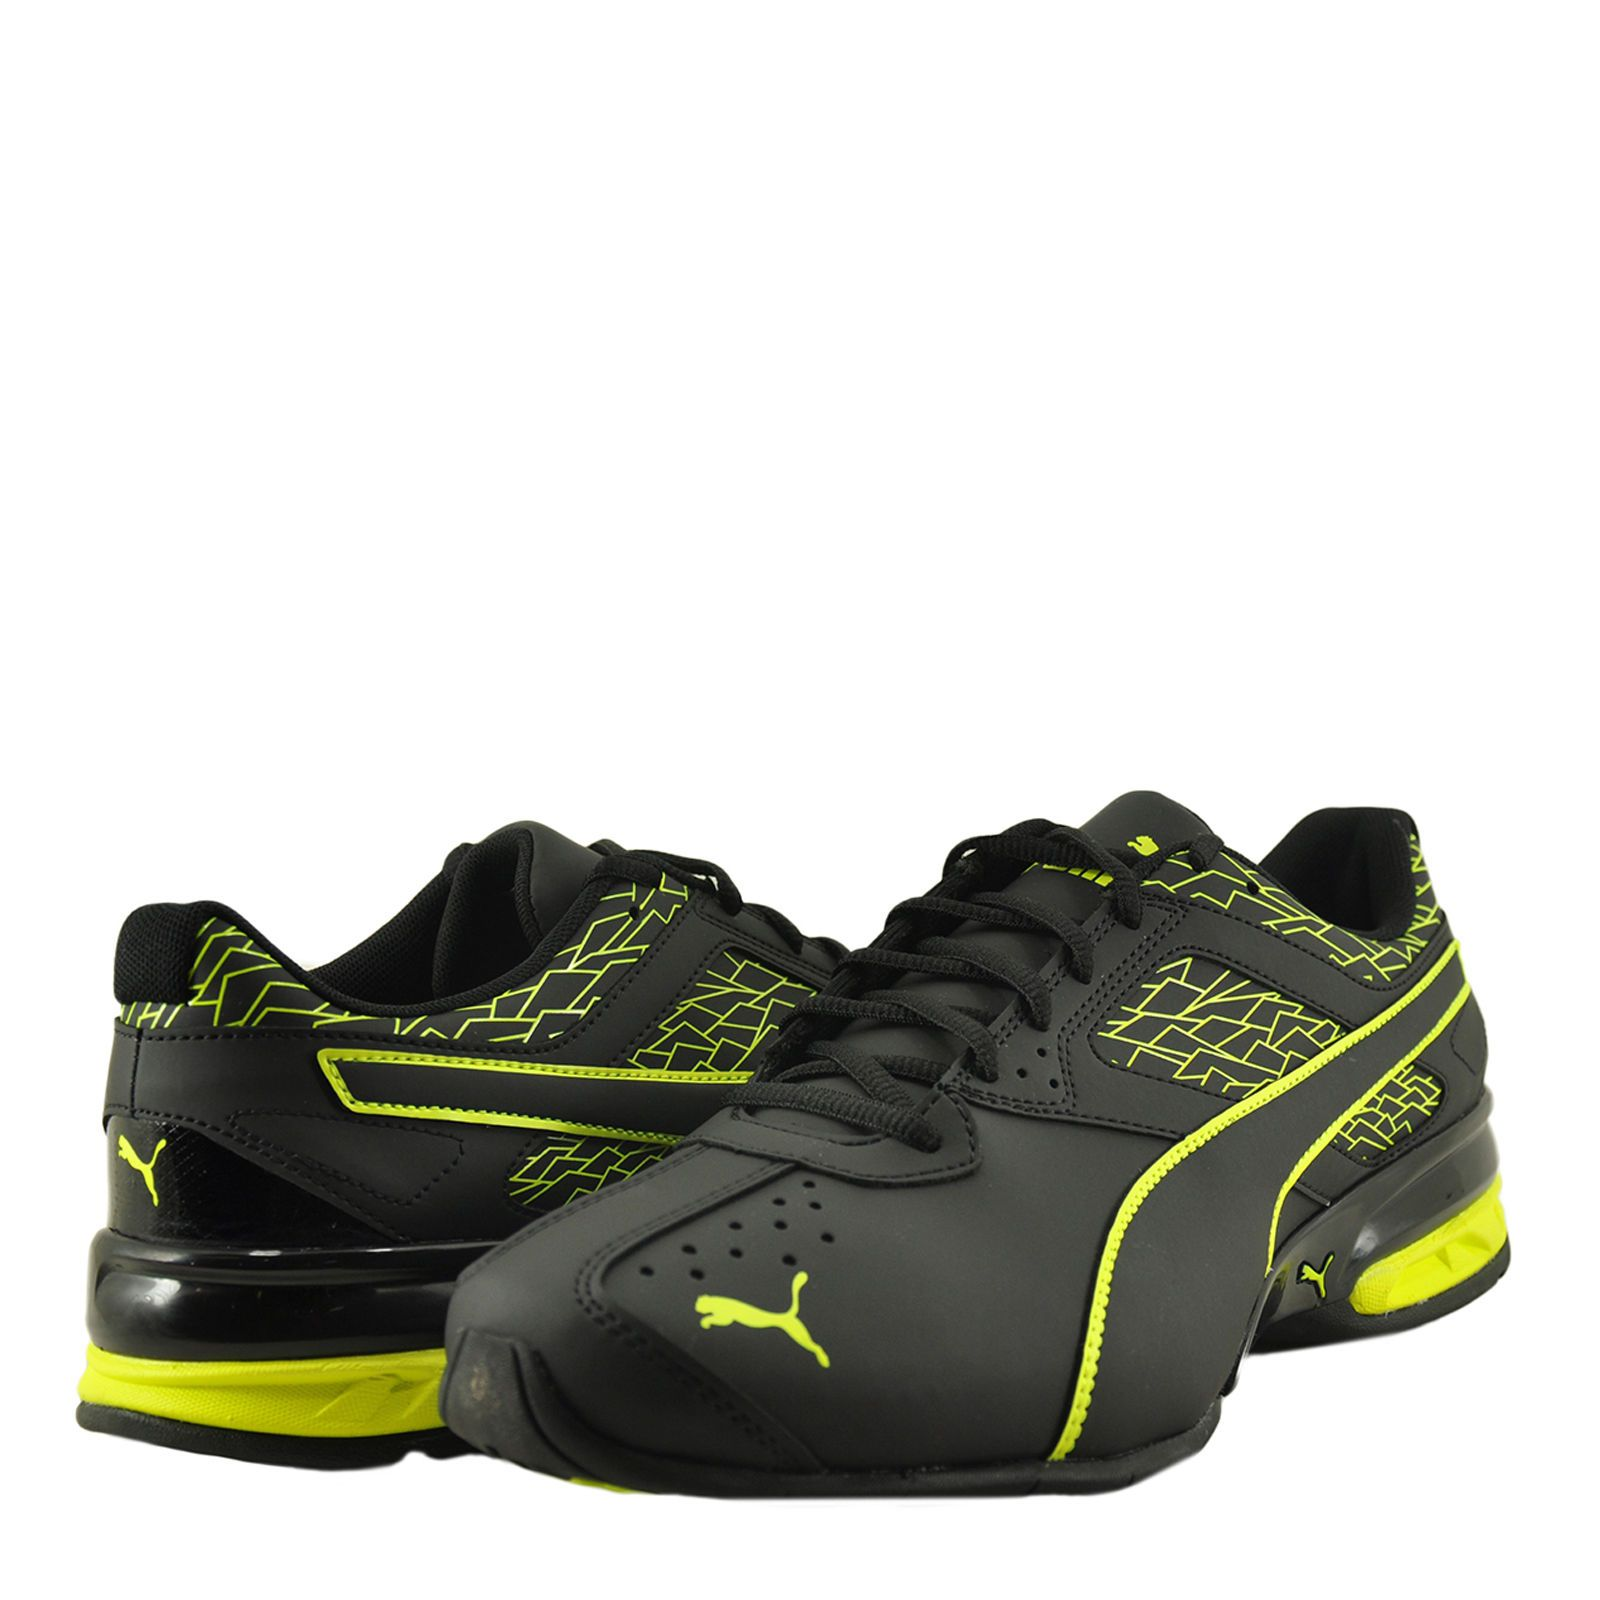 4f9a810d64b86f Men S Shoes Puma Tazon 6 Fracture Fm Sneaker 189875-05 Black Safety Yellow